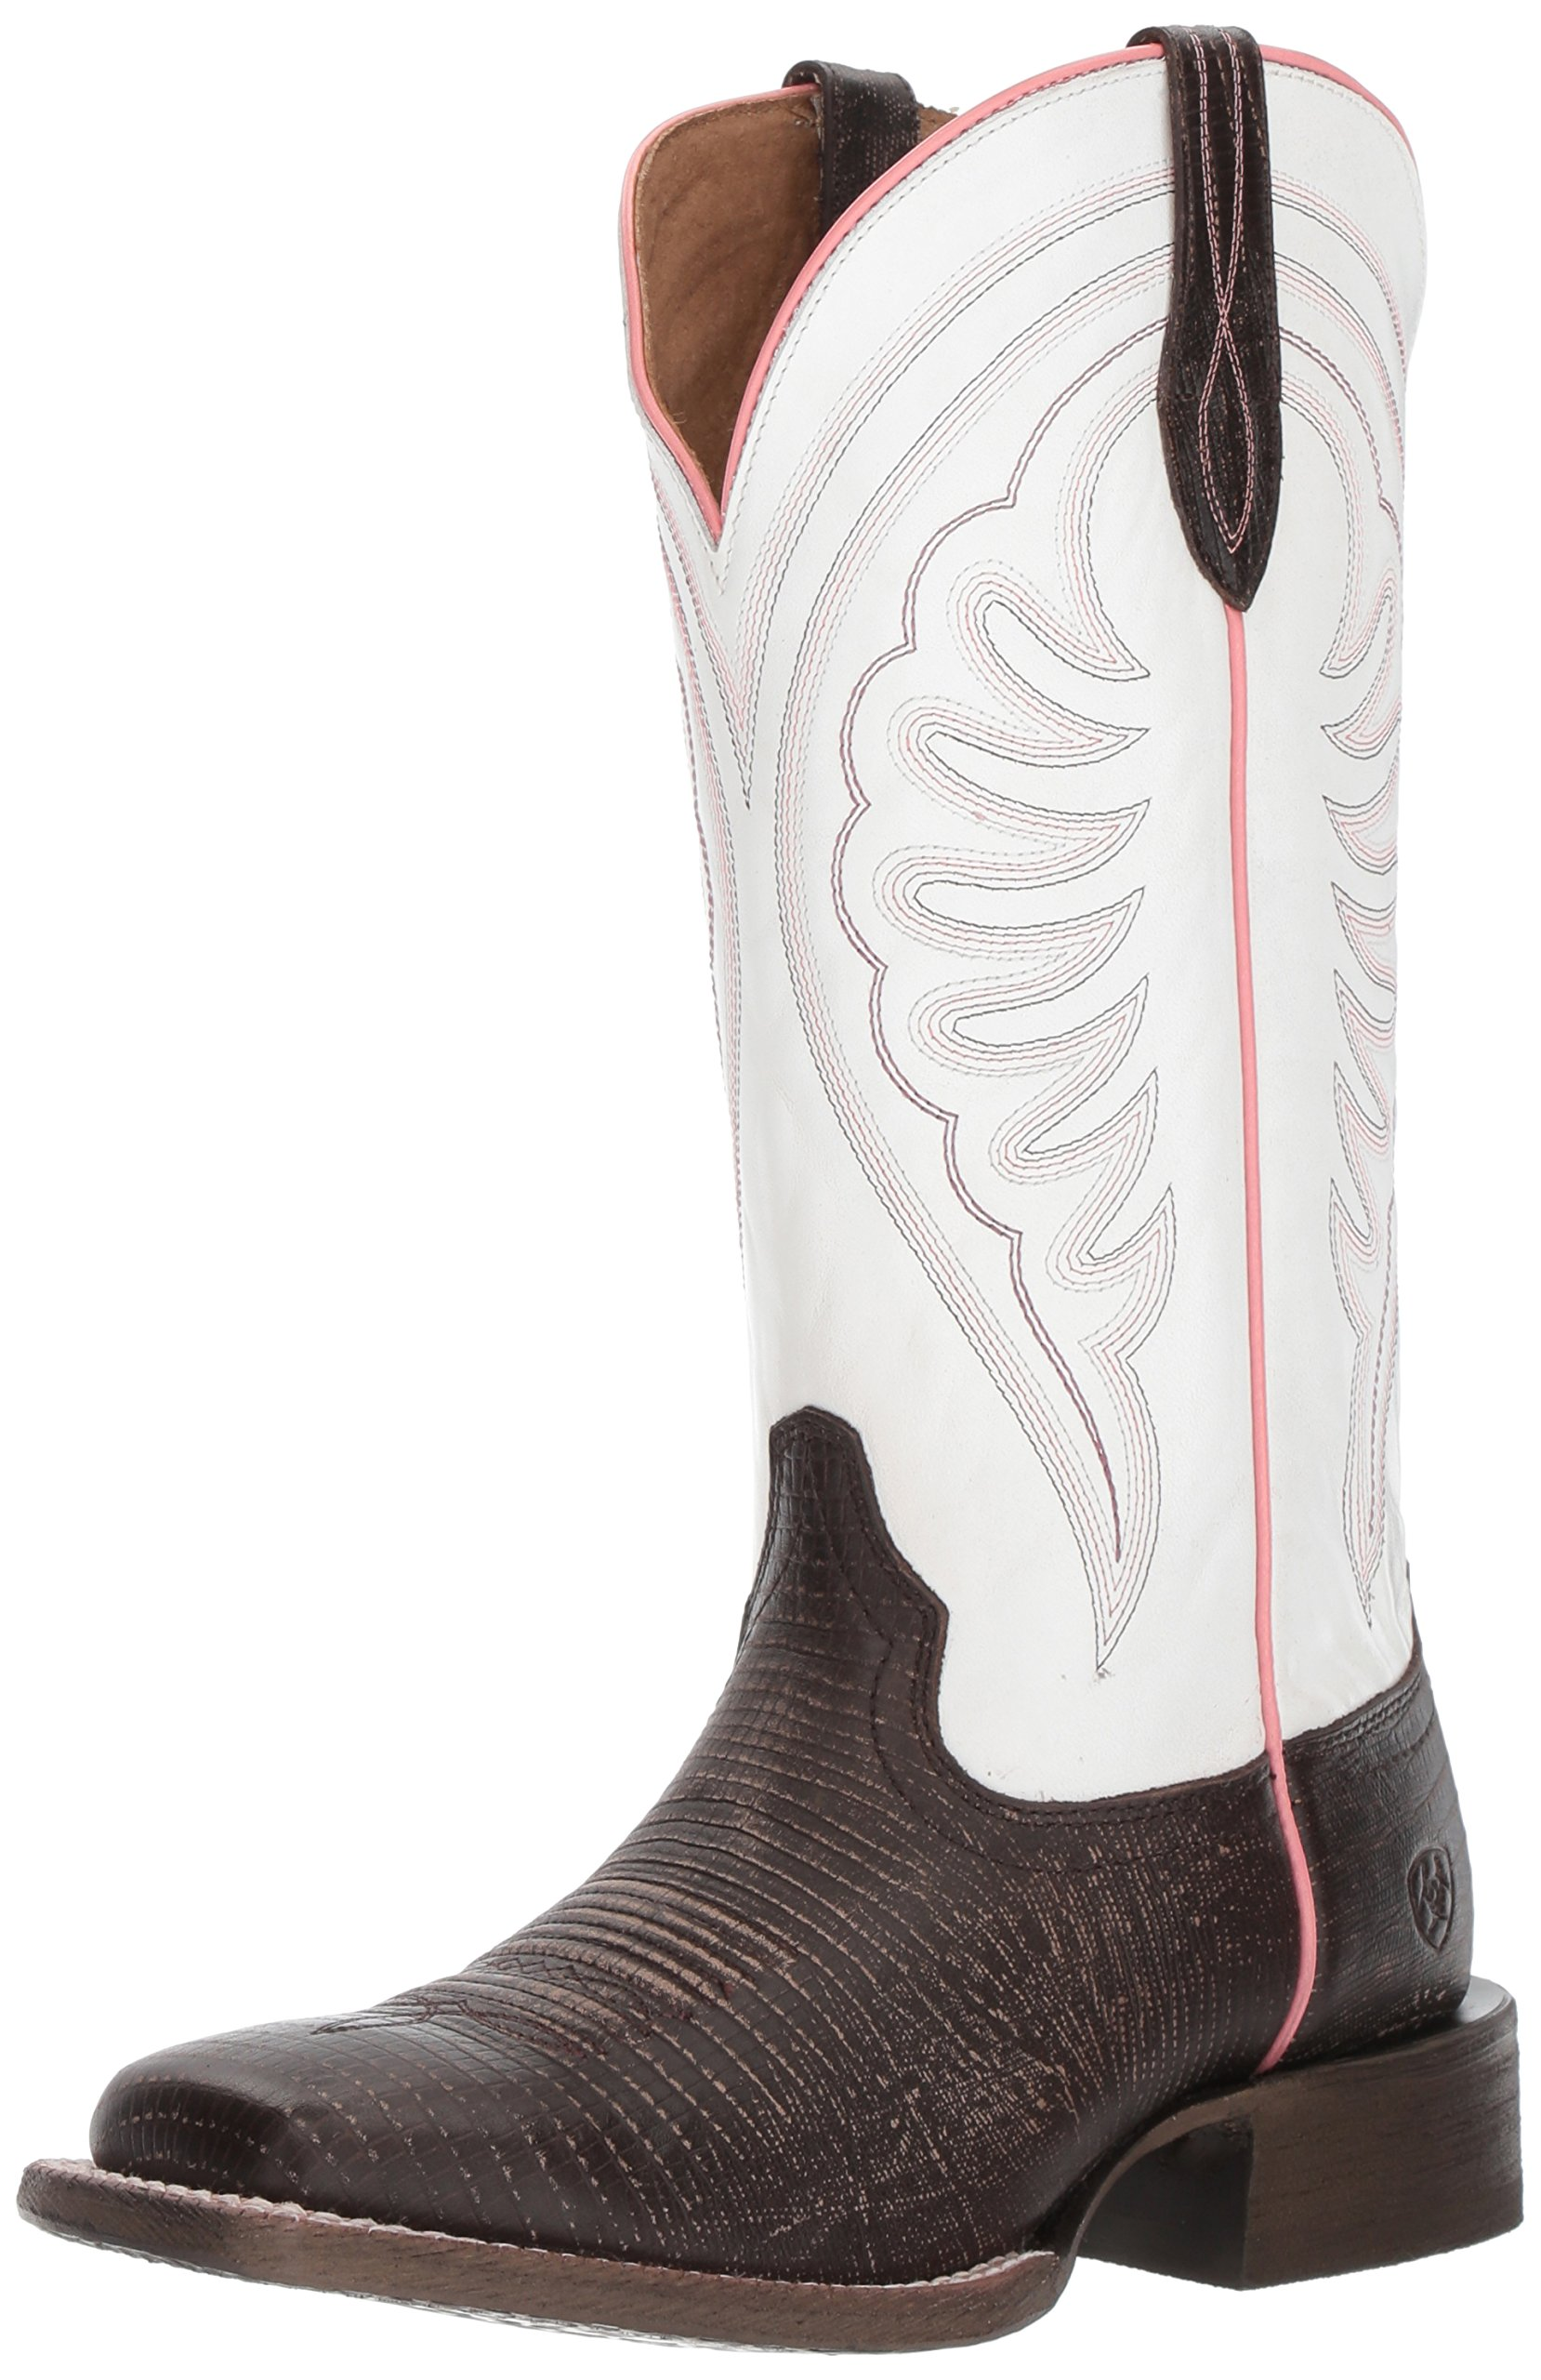 Ariat Women's Circuit Shiloh Work Boot, Chocolate Lizard Print, 8 B US